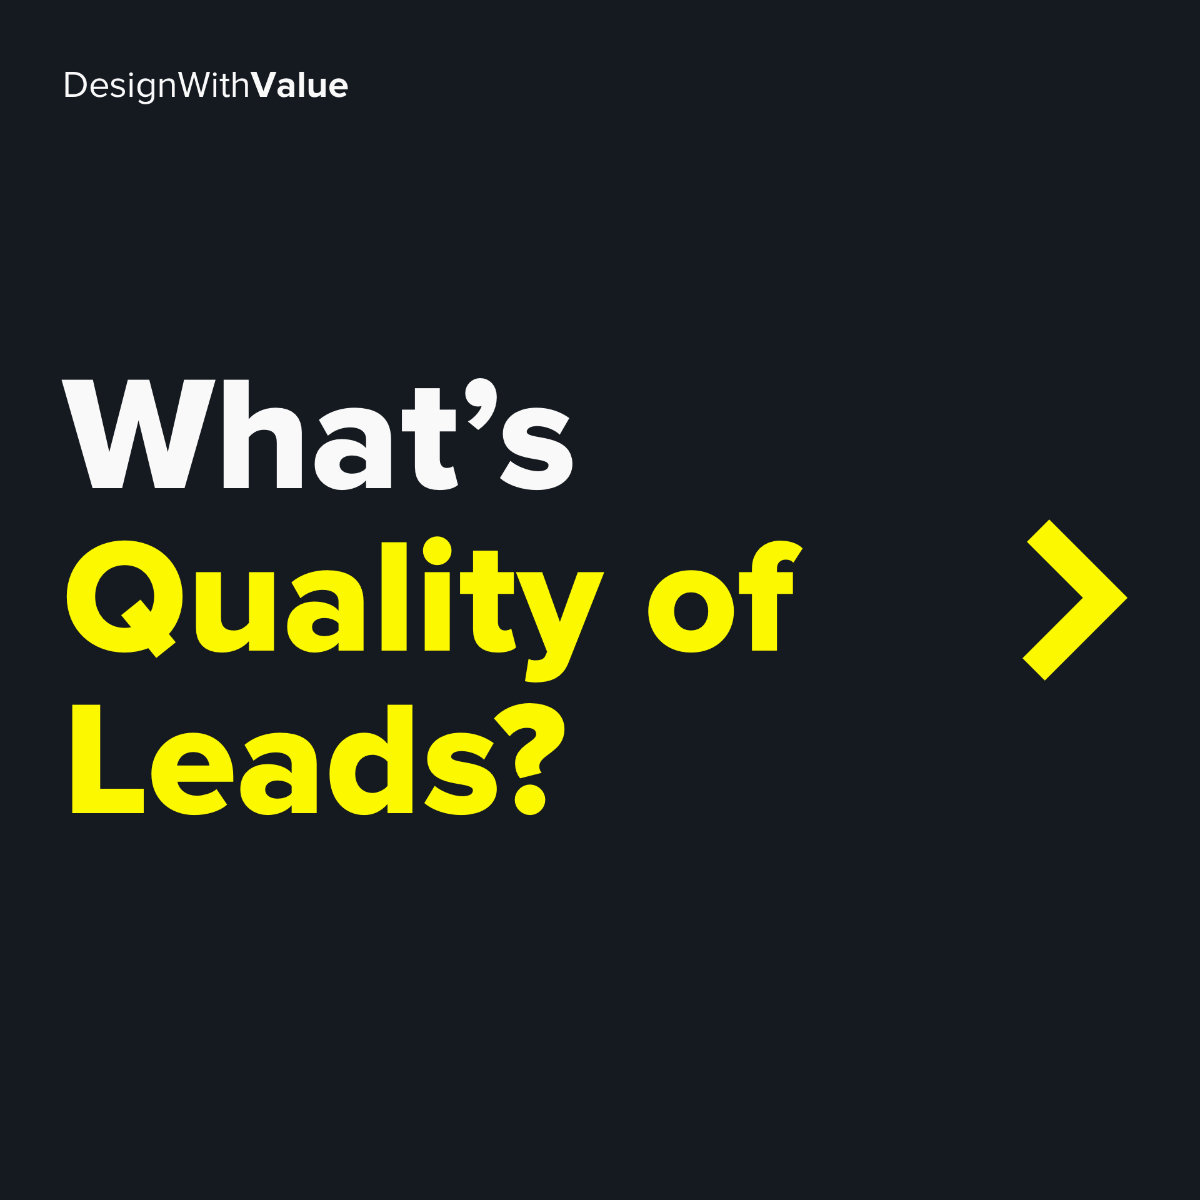 What's quality of leads?